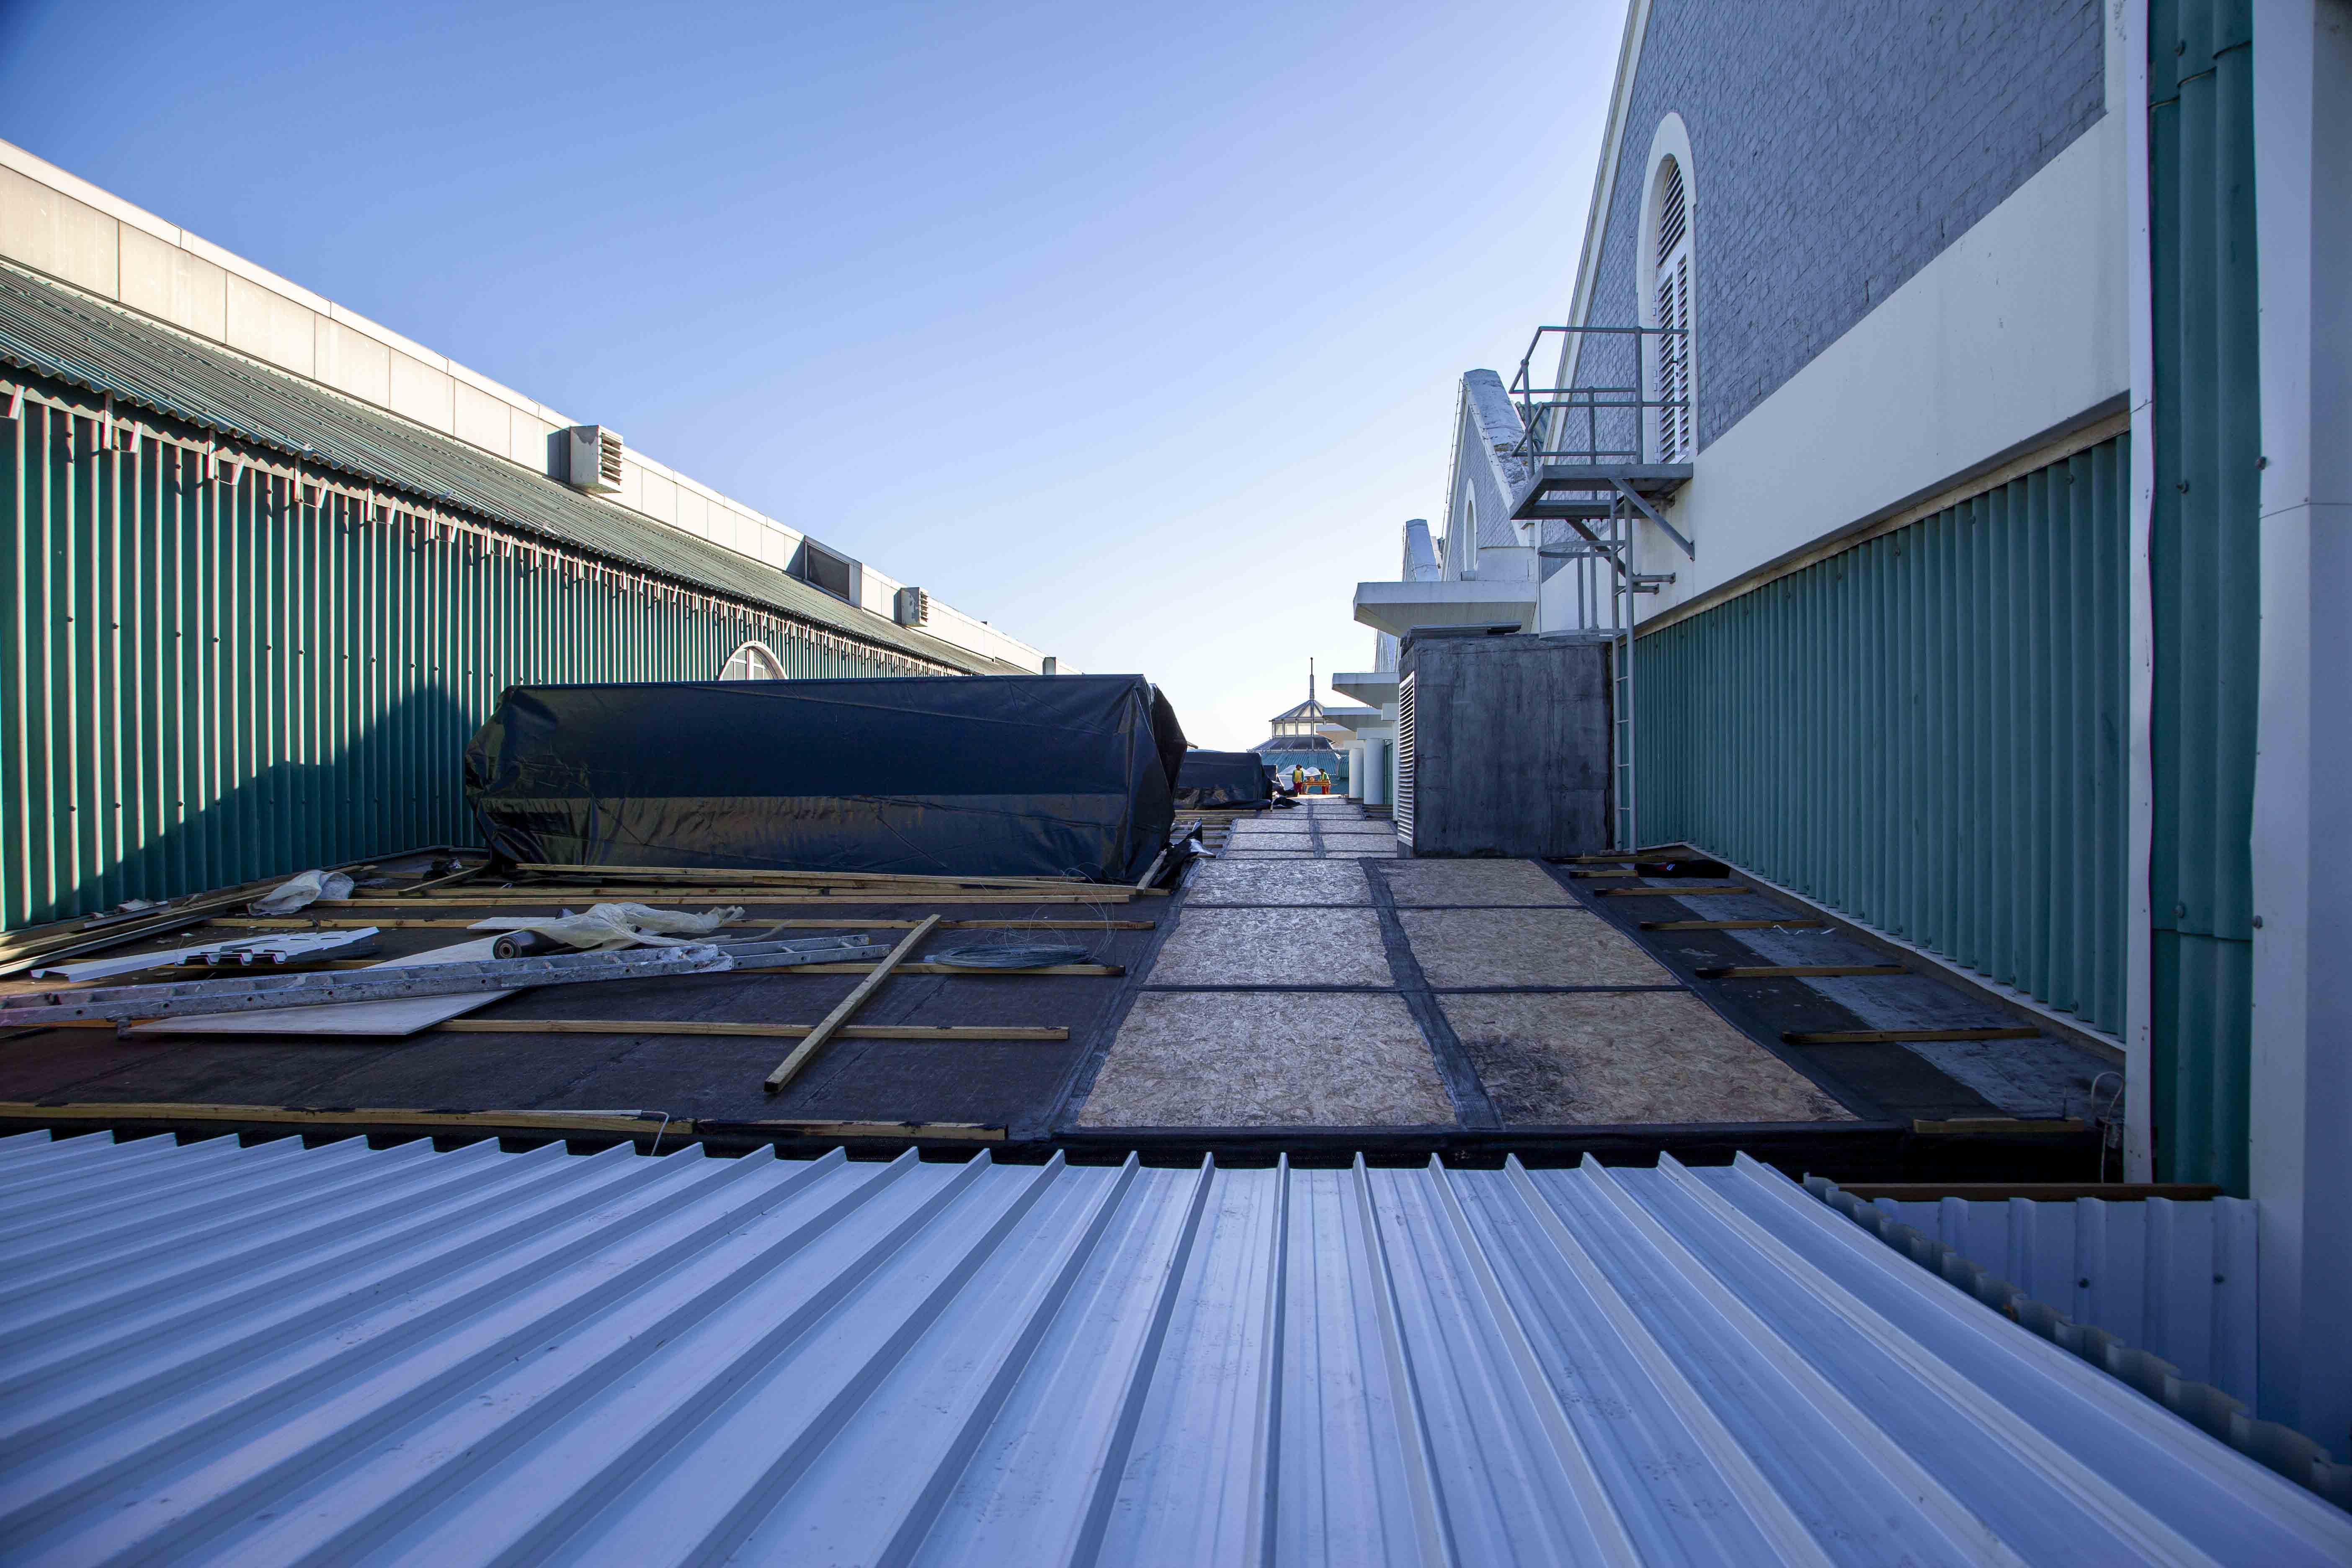 V&A Waterfront roofing Cape Town roofing project waterproofing by roofing contractors, Indawo